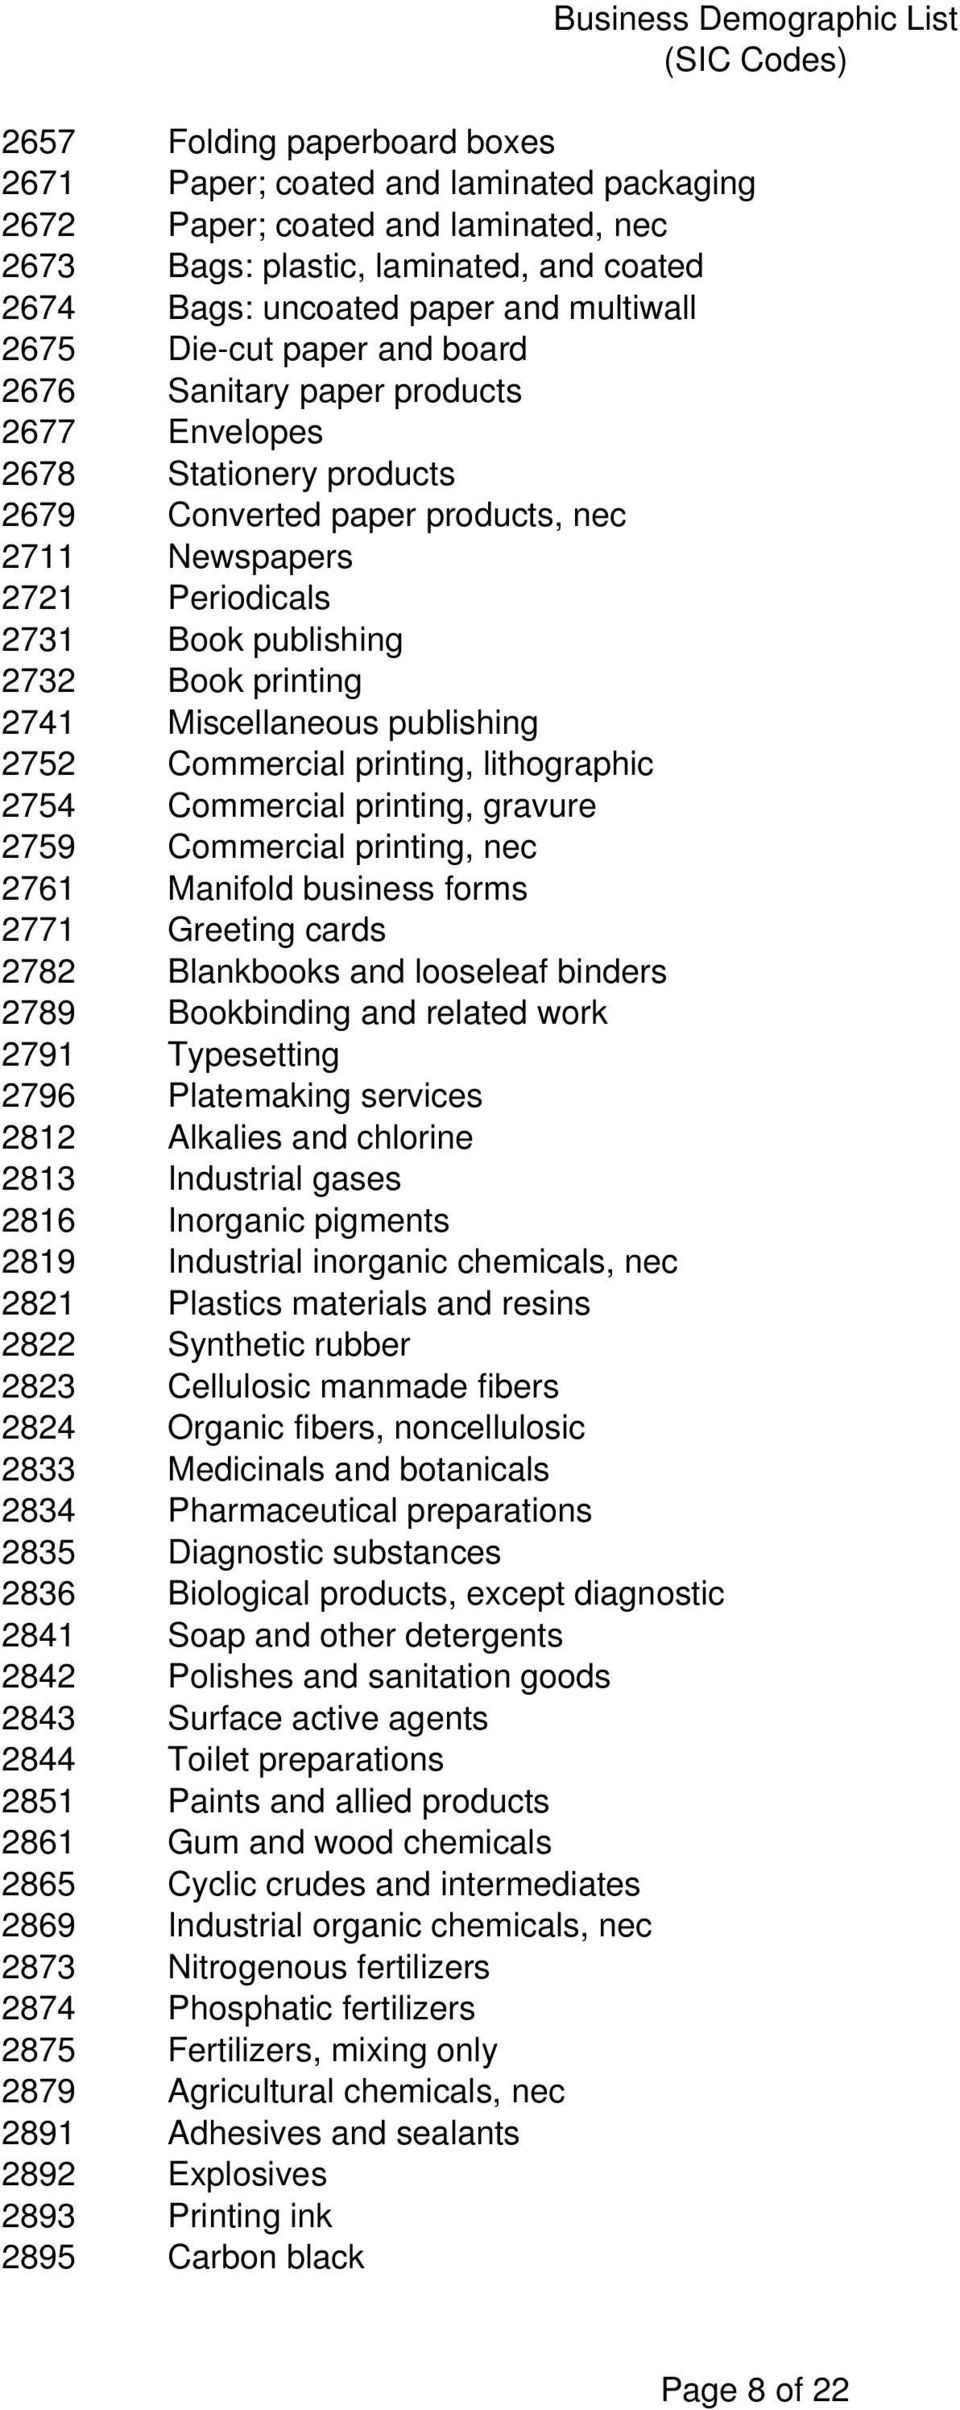 printing 2741 Miscellaneous publishing 2752 Commercial printing, lithographic 2754 Commercial printing, gravure 2759 Commercial printing, nec 2761 Manifold business forms 2771 Greeting cards 2782